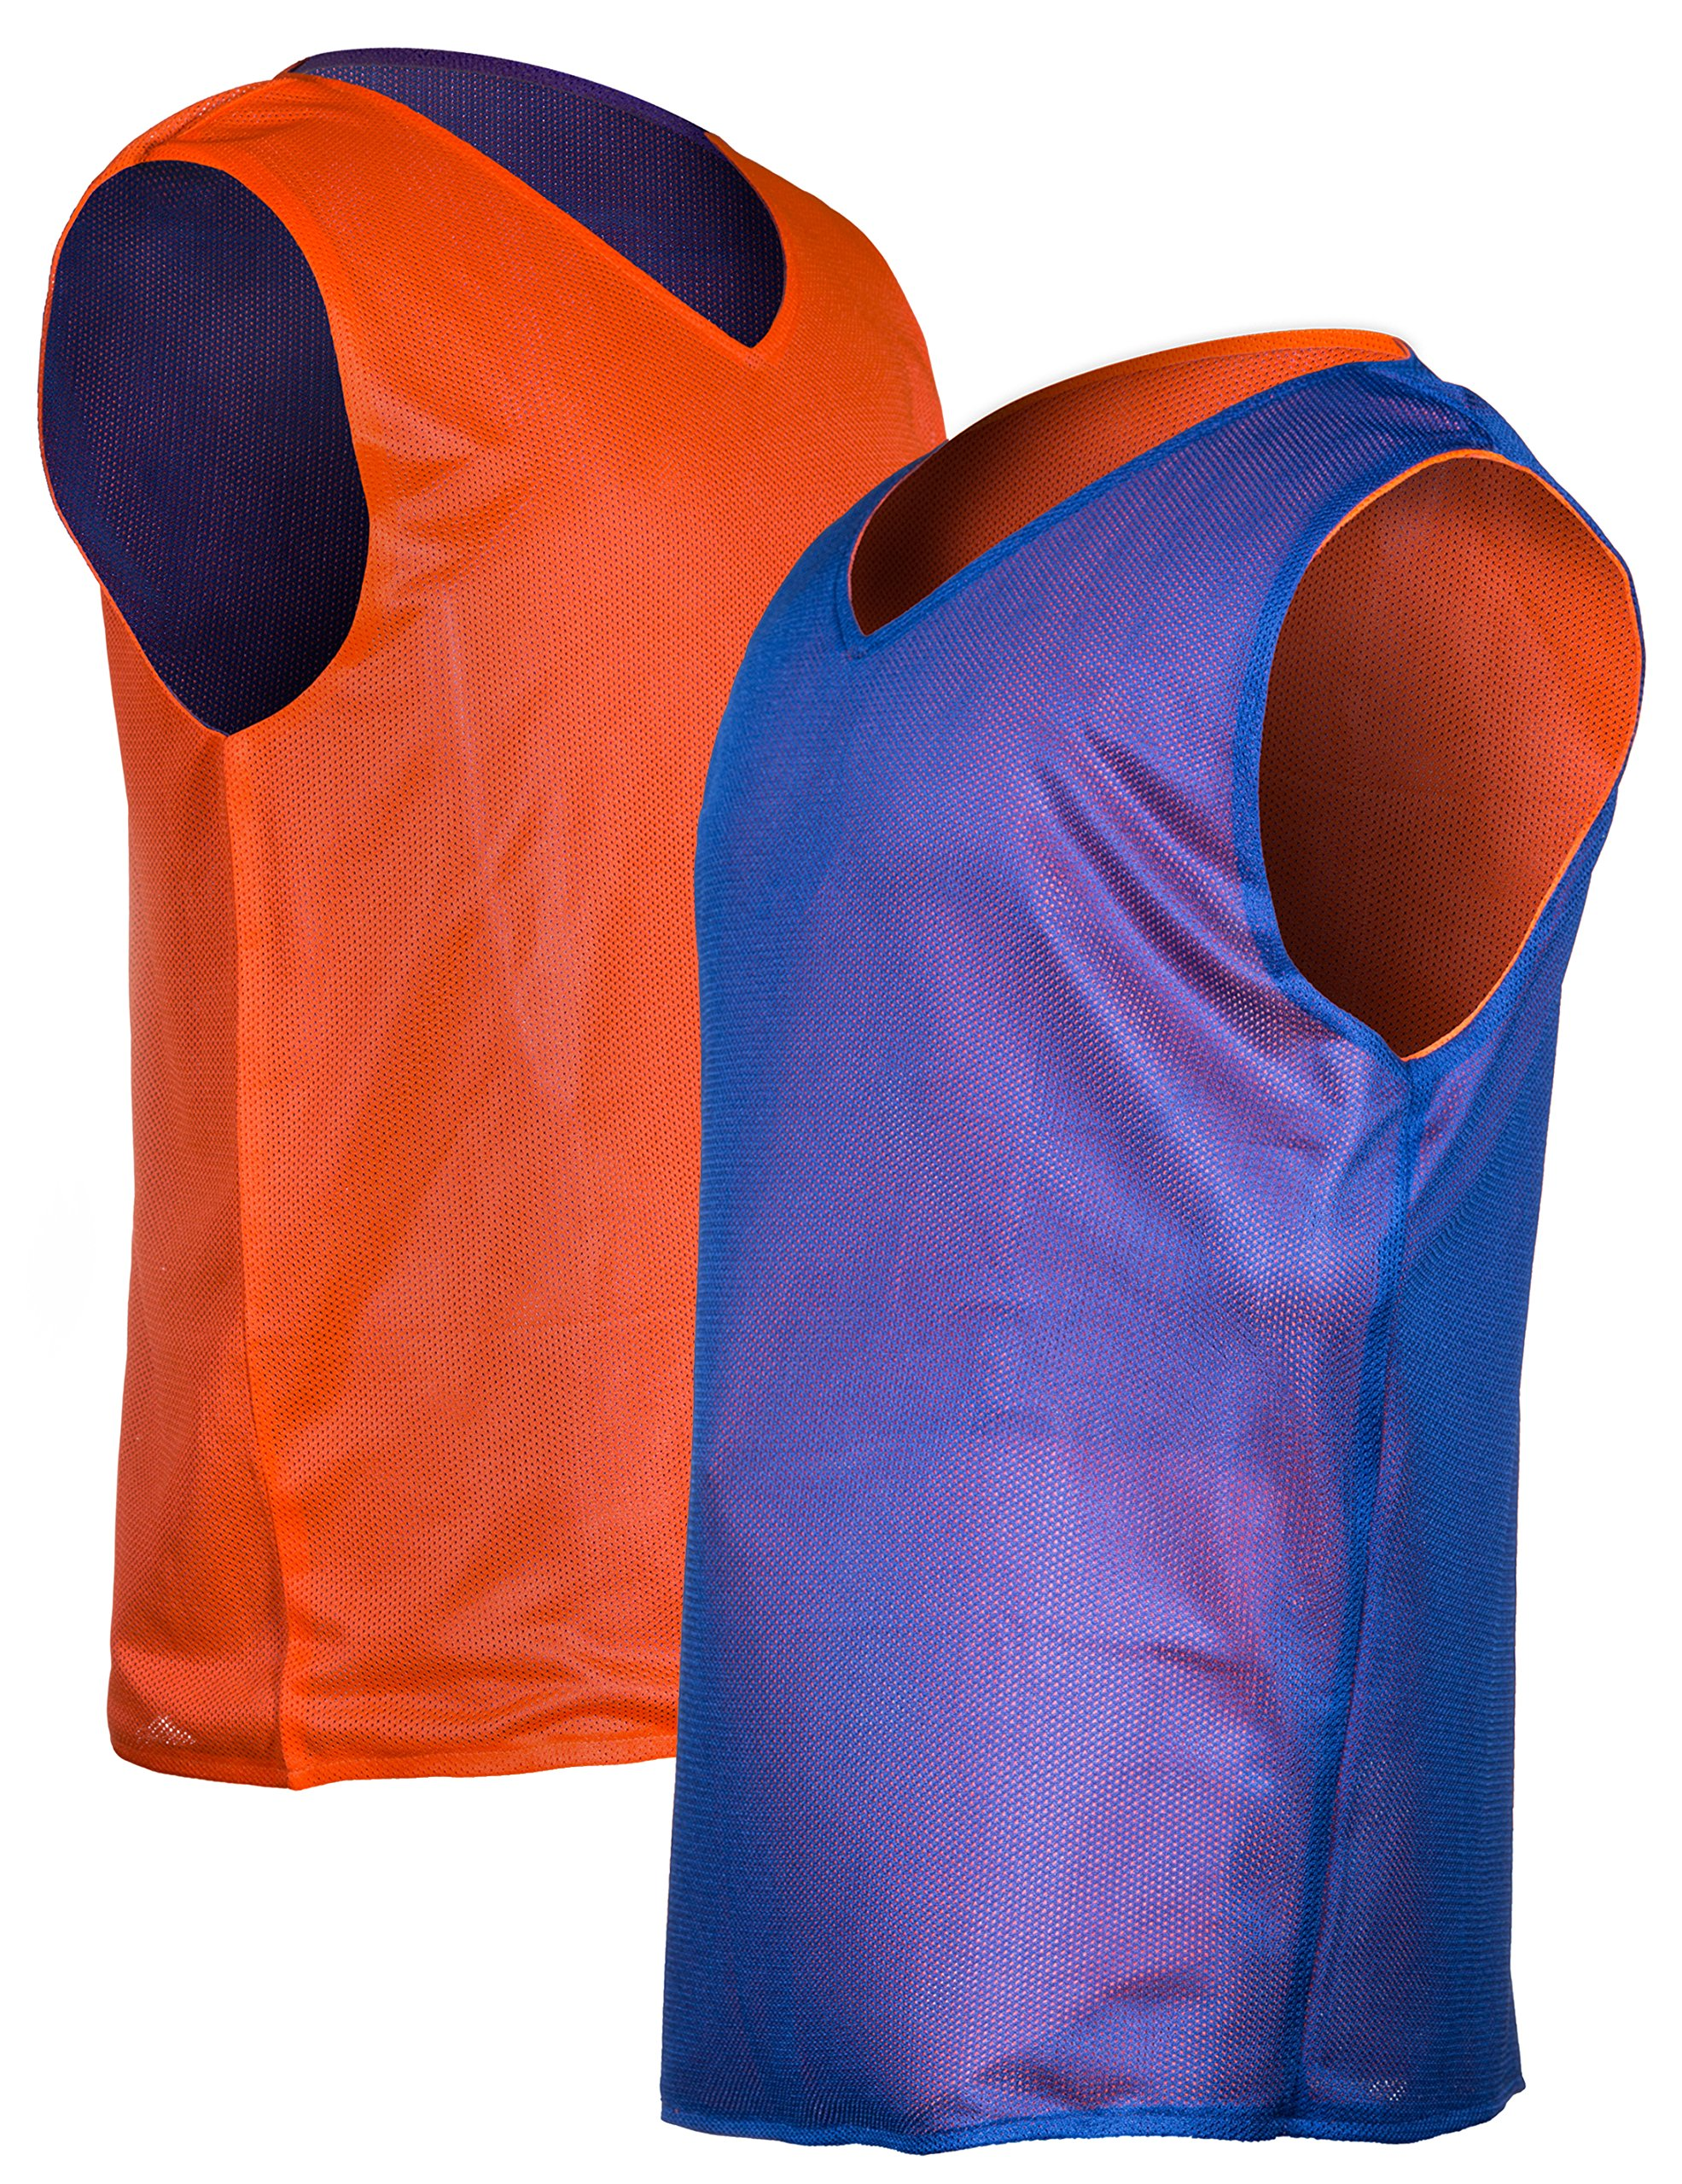 Eagle's Club 5-Count Adult/Teen Pinnies—Reversible Scrimmage Jerseys/Practice Vests for Soccer, Basketball, Lacrosse